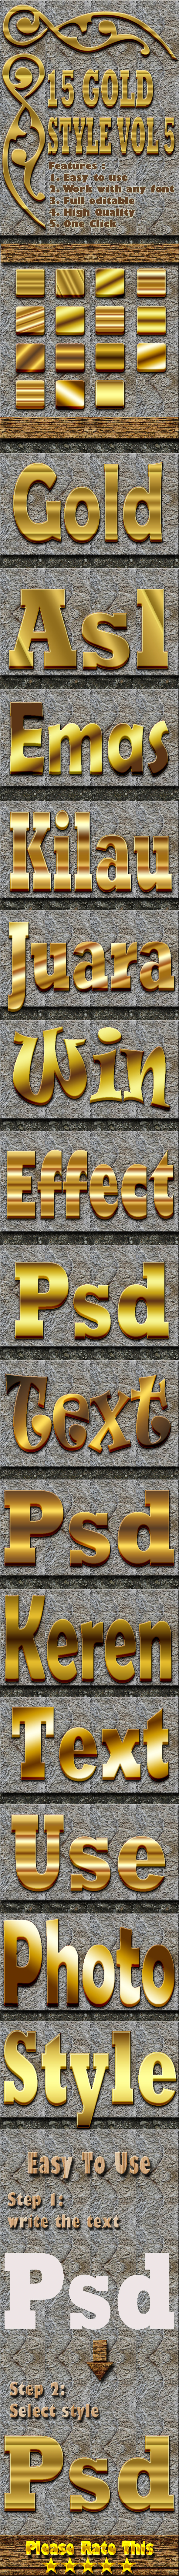 15 Gold Text Effect Style Vol 5 - Text Effects Styles